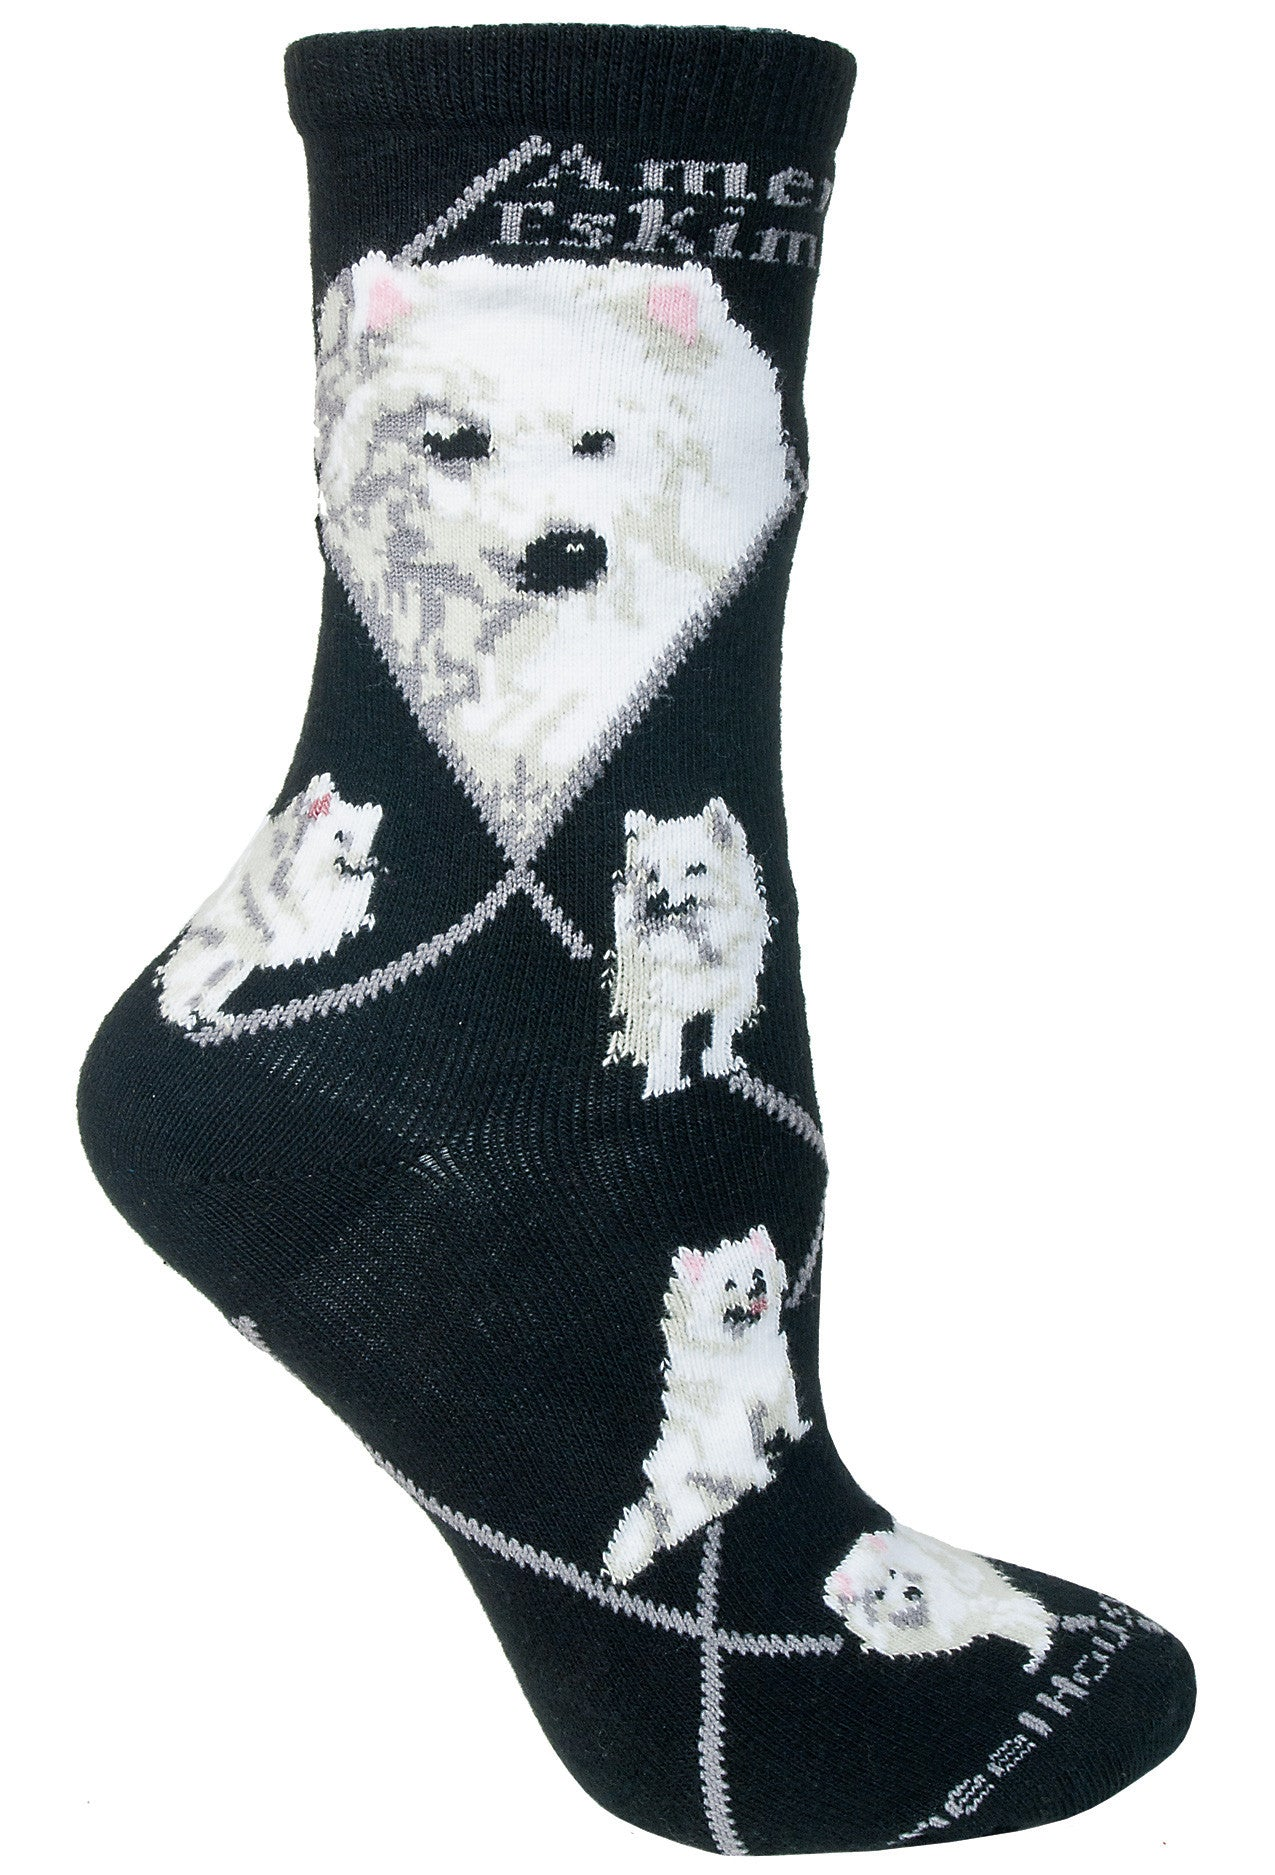 American Eskimo on Black Socks